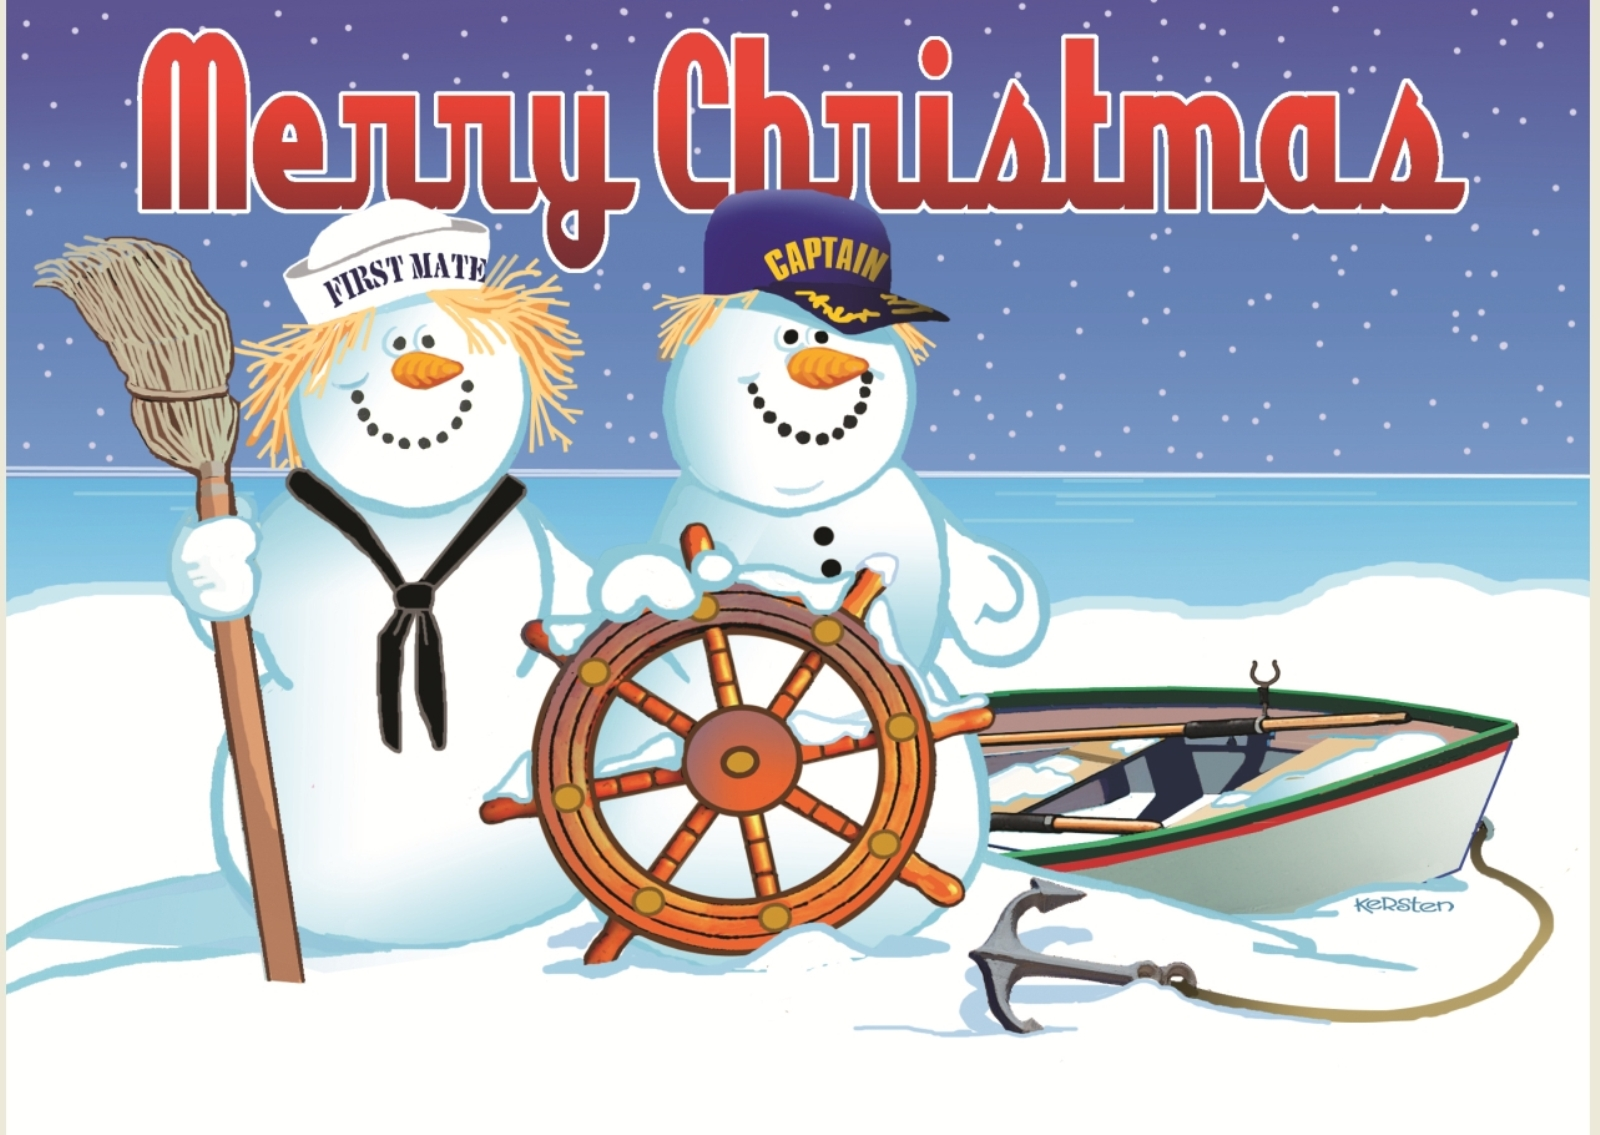 Merry Christmas Ships Captain And First Mate Snowmates 18